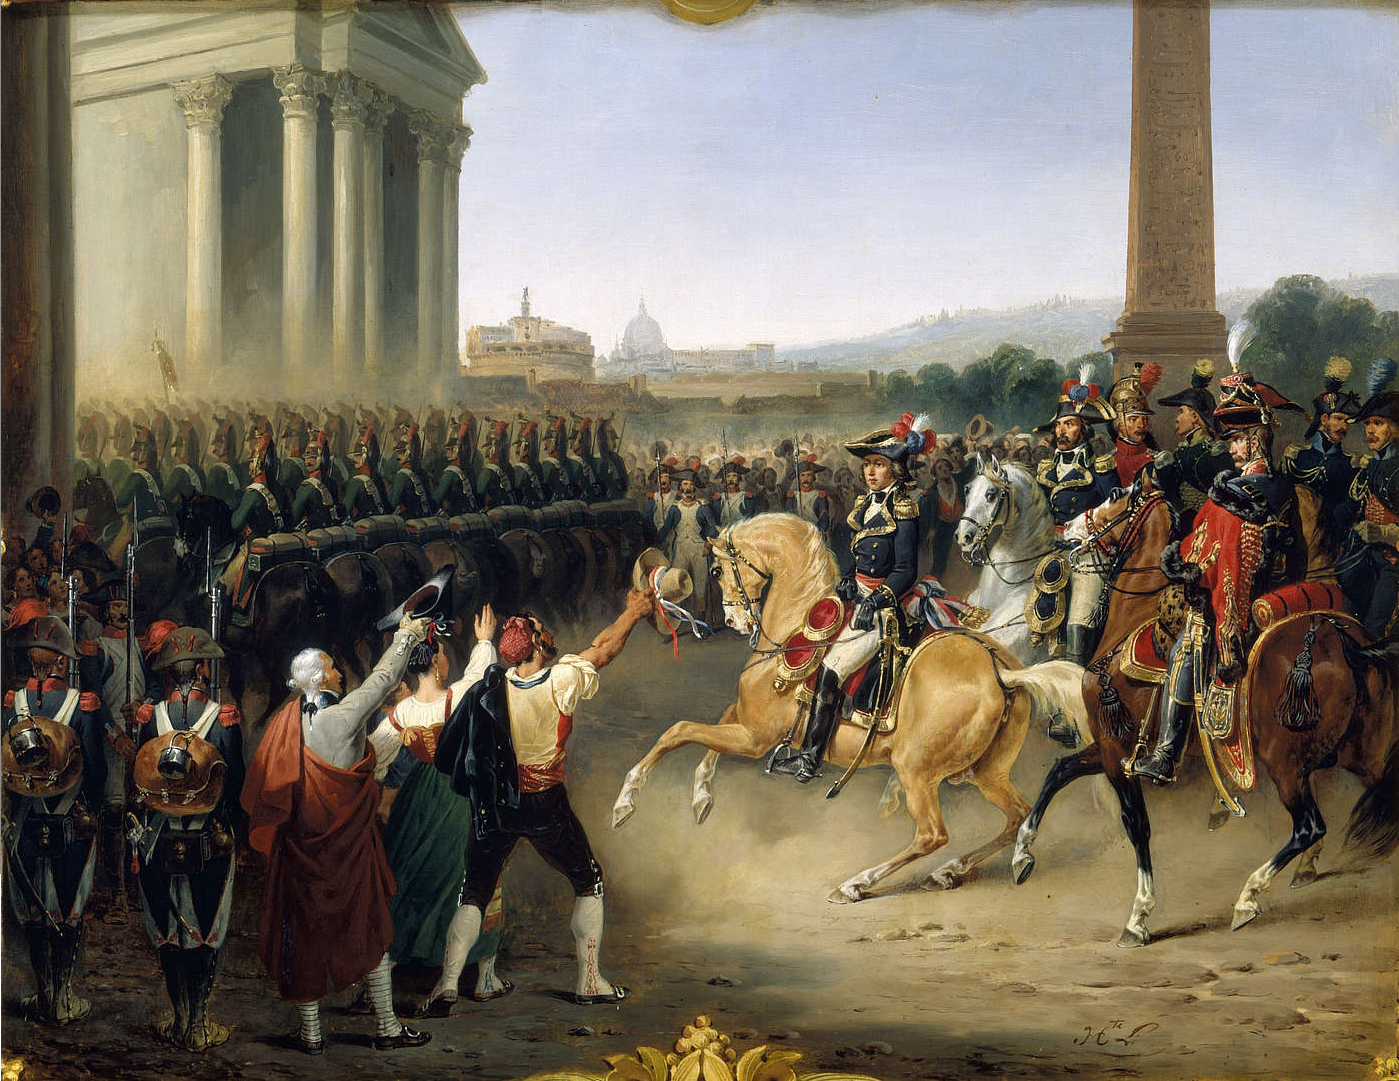 How was the rule of Napoleon Bonaparte different from the rule of the French monarchs?